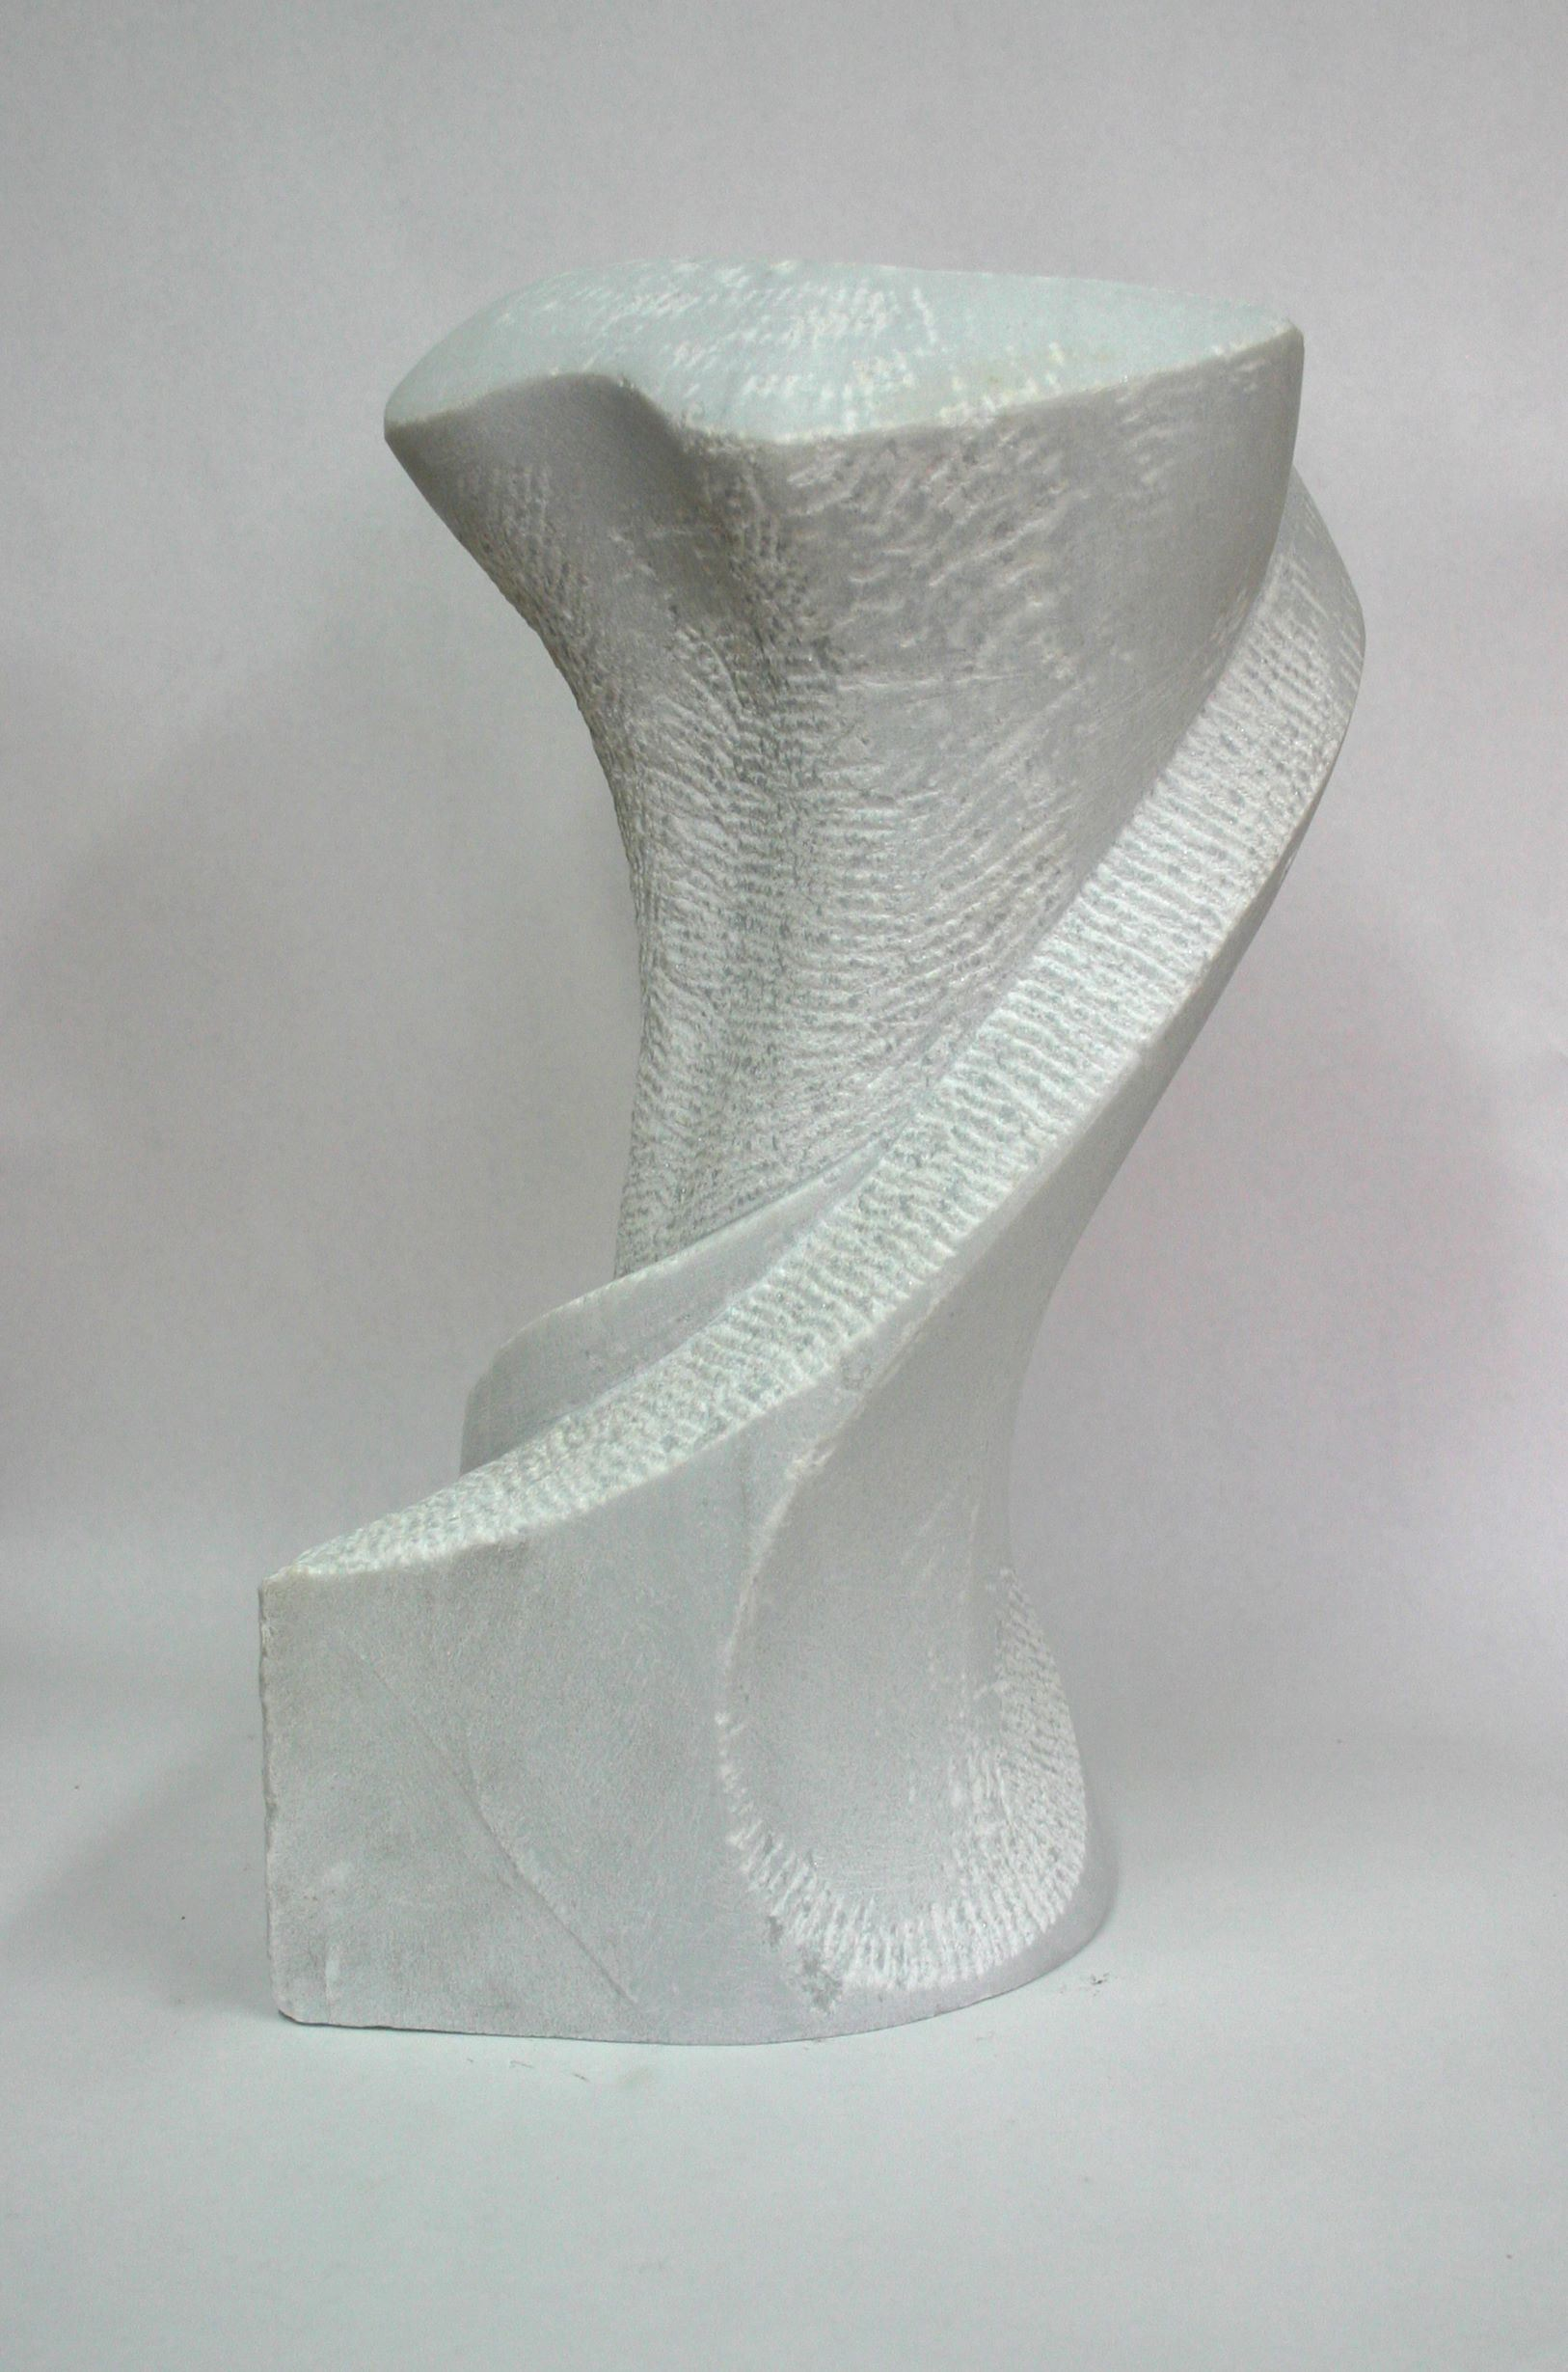 Image of a white, twisting sculpture made of stone.